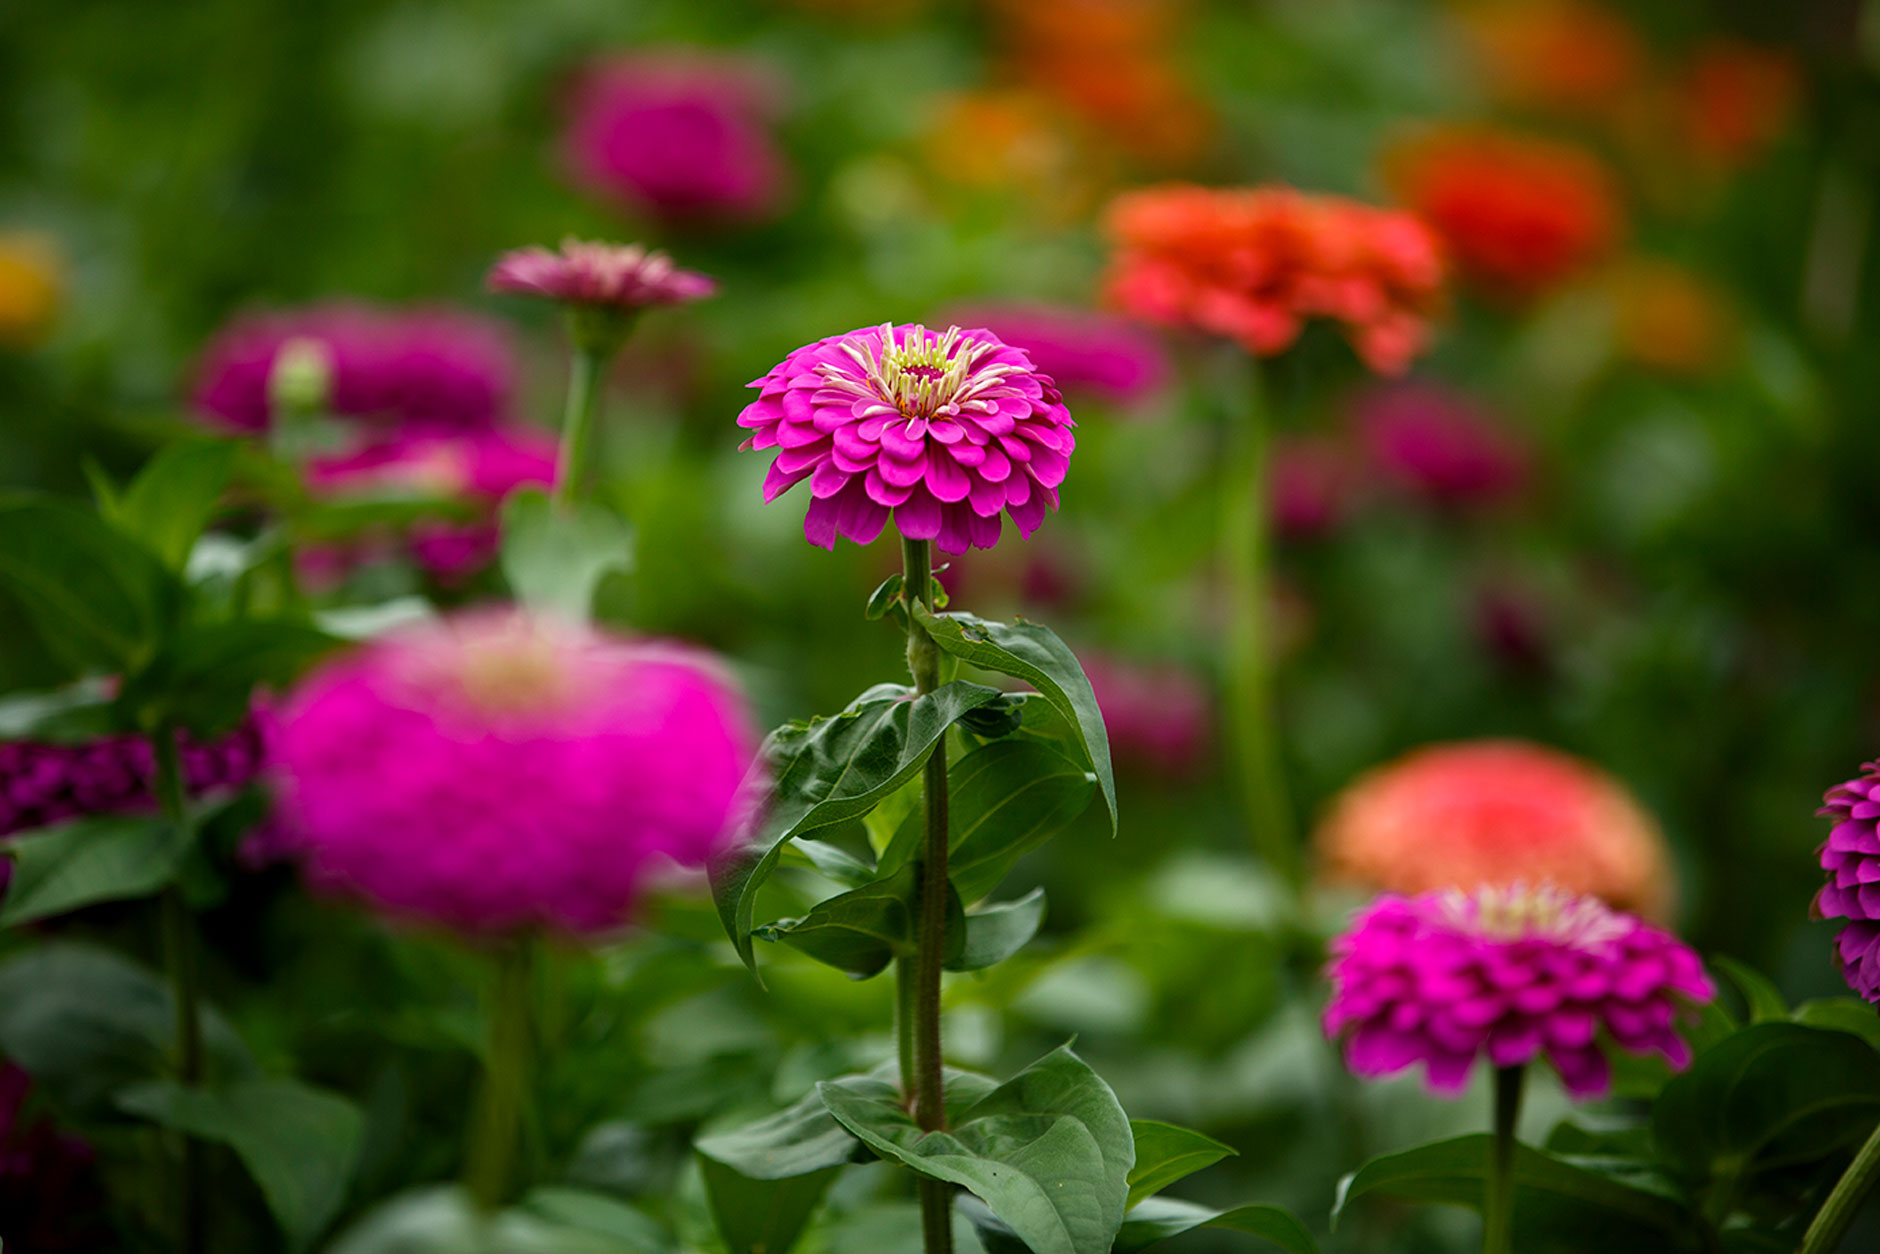 Zinnias grow at the IU Campus Farm on Friday, Sept. 7, 2018. The flowers help increase pollination in nearby vegetables by attracting bees. (James Brosher/IU Communications)